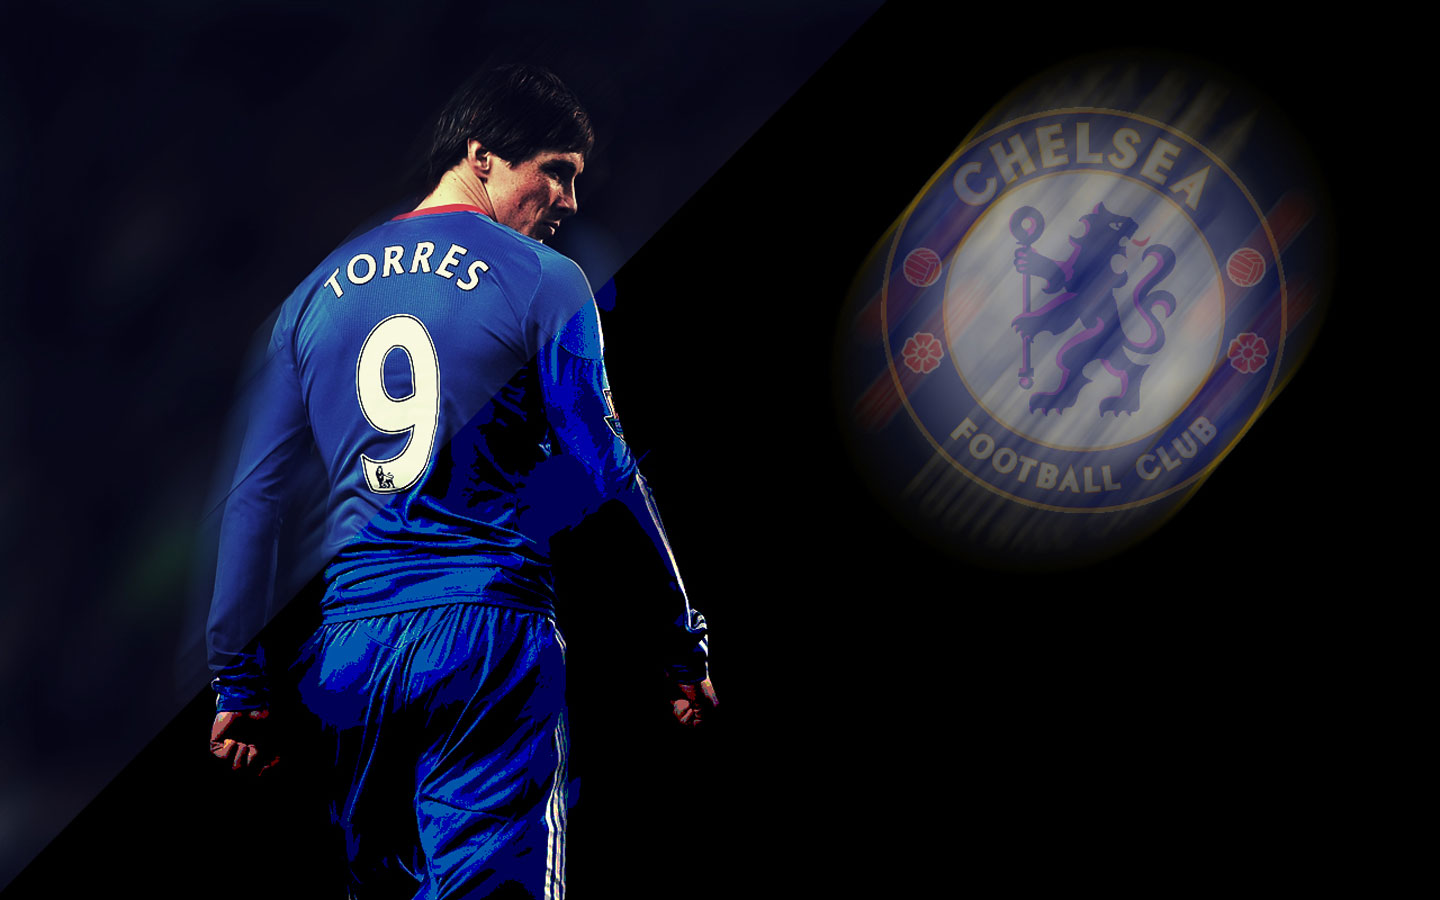 Fernando Torres HD Images   HD Wallpapers Backgrounds of Your Choice 1440x900